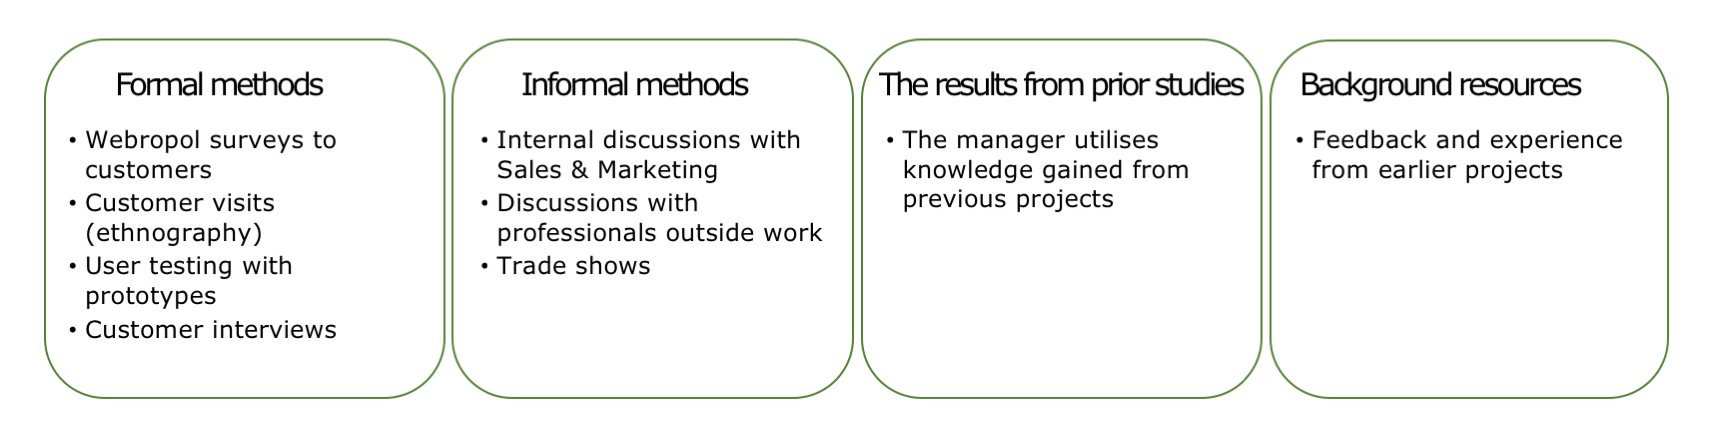 This method mix highlights internal sources and earlier experience.